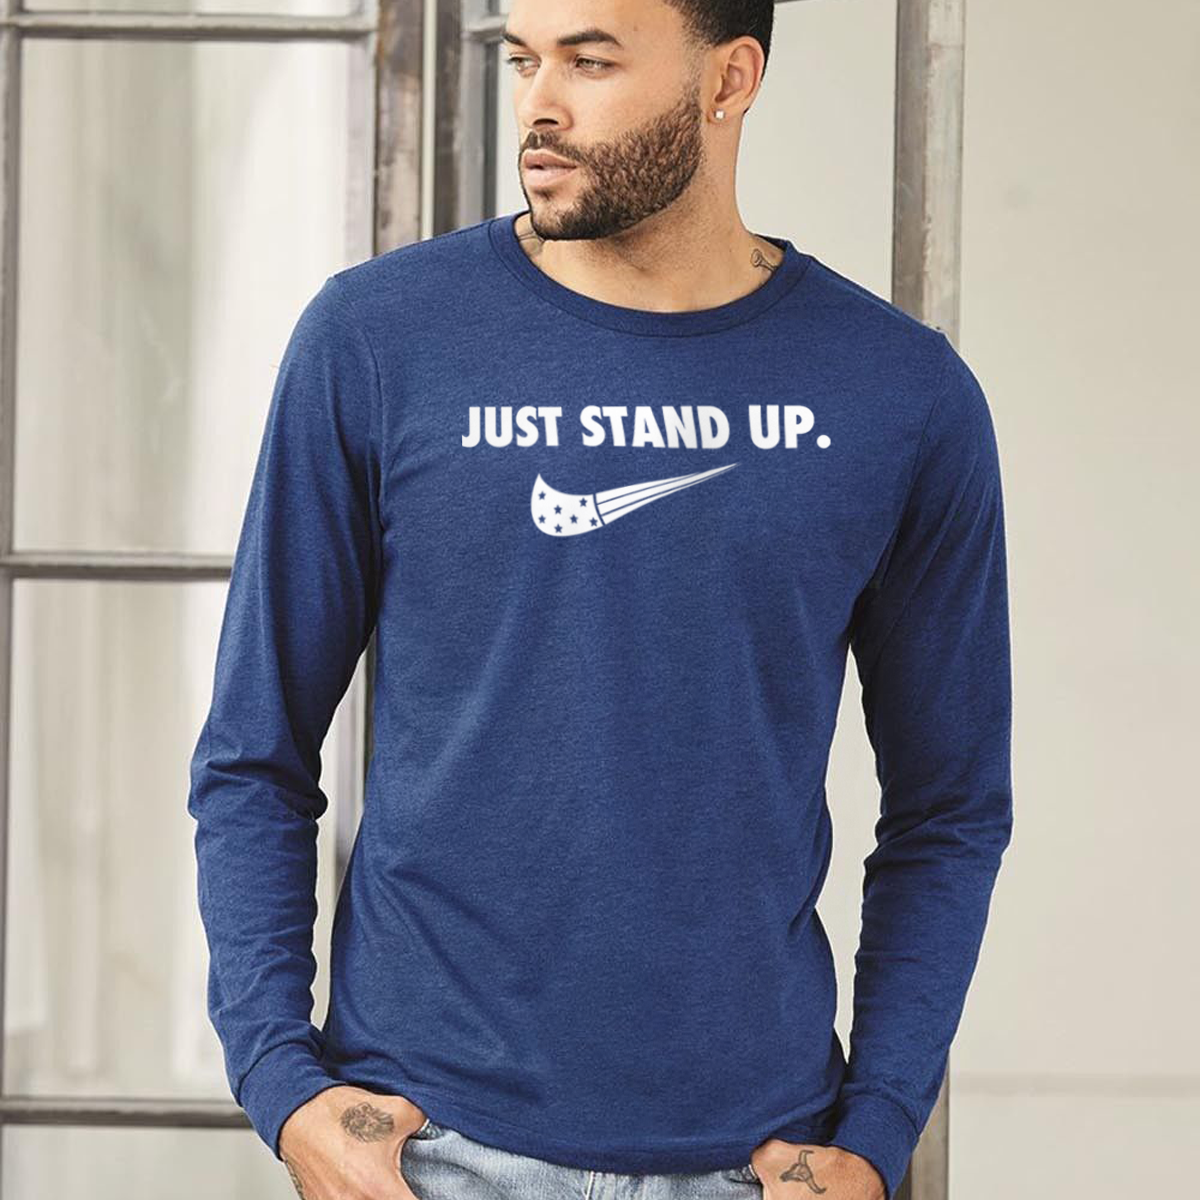 Just Stand